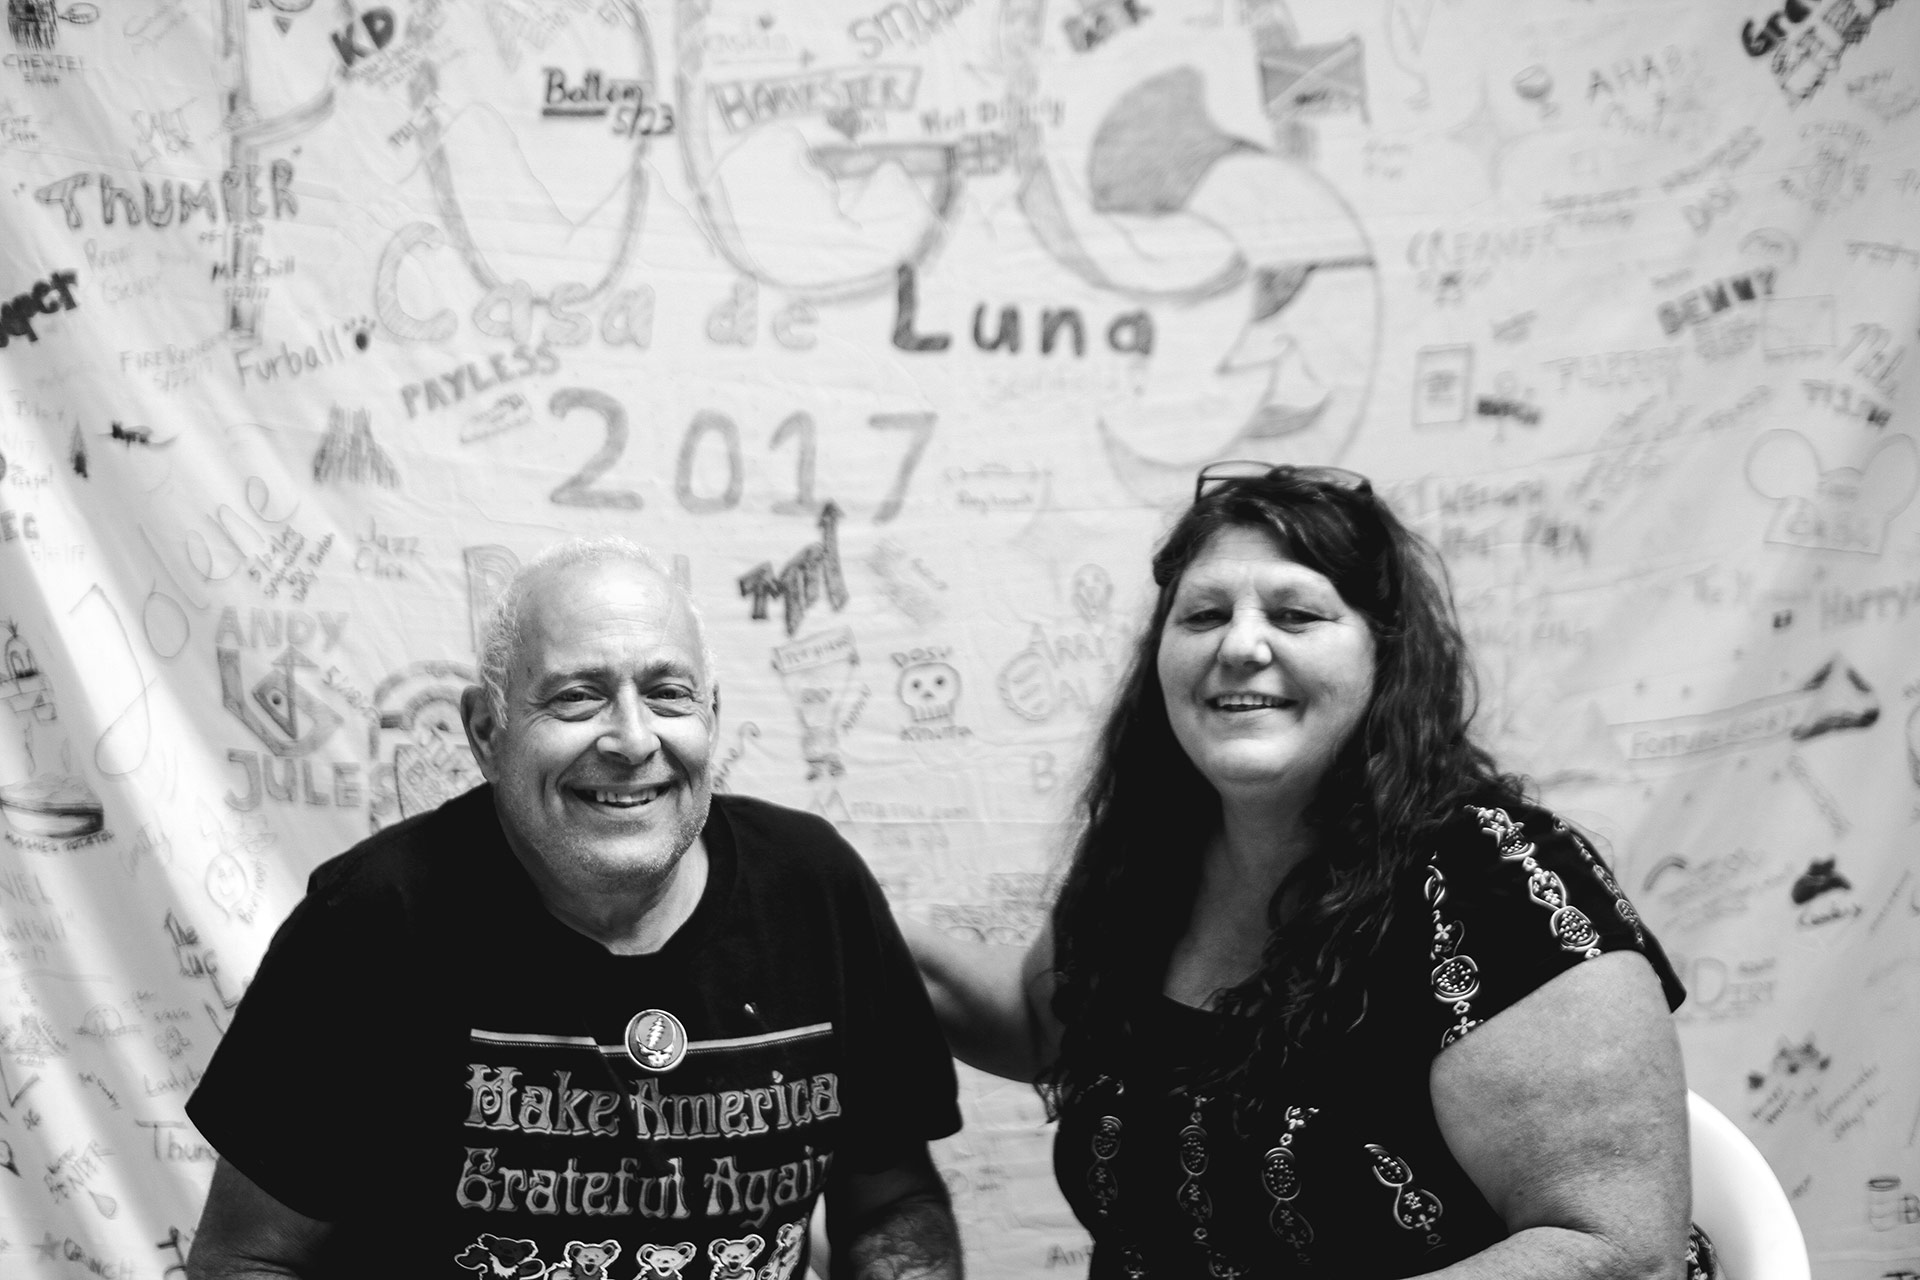 A tribute and apology to Terrie and Joe Anderson of Casa de Luna